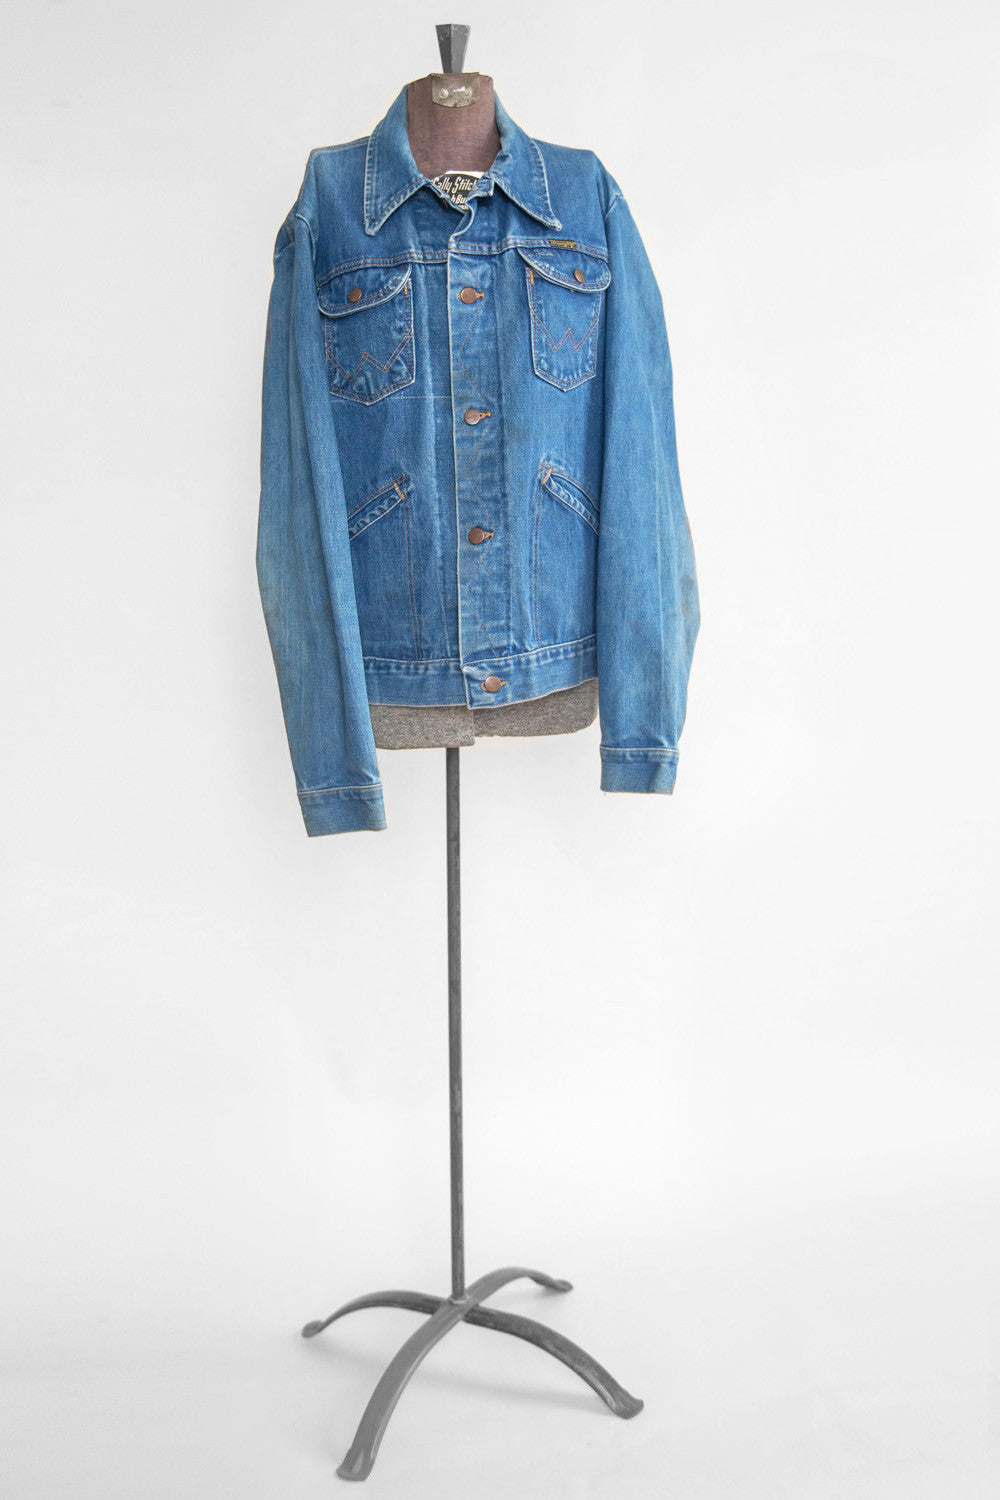 Vintage Women's Denim Wrangler Jacket